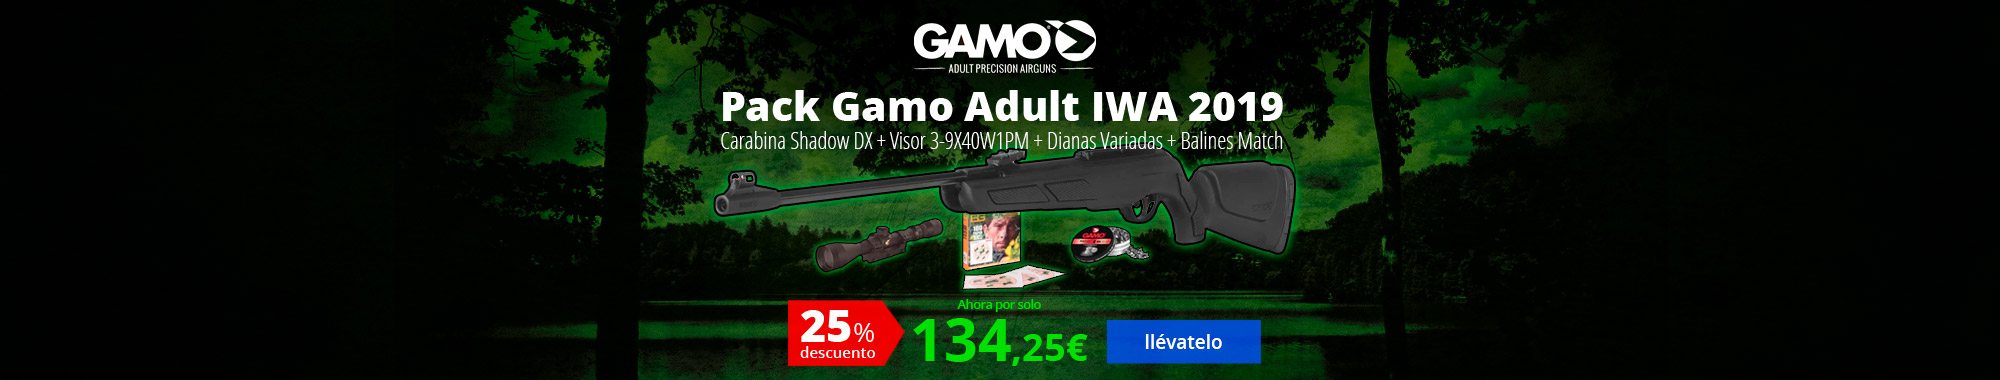 -25% Pack Gamo Adult IWA